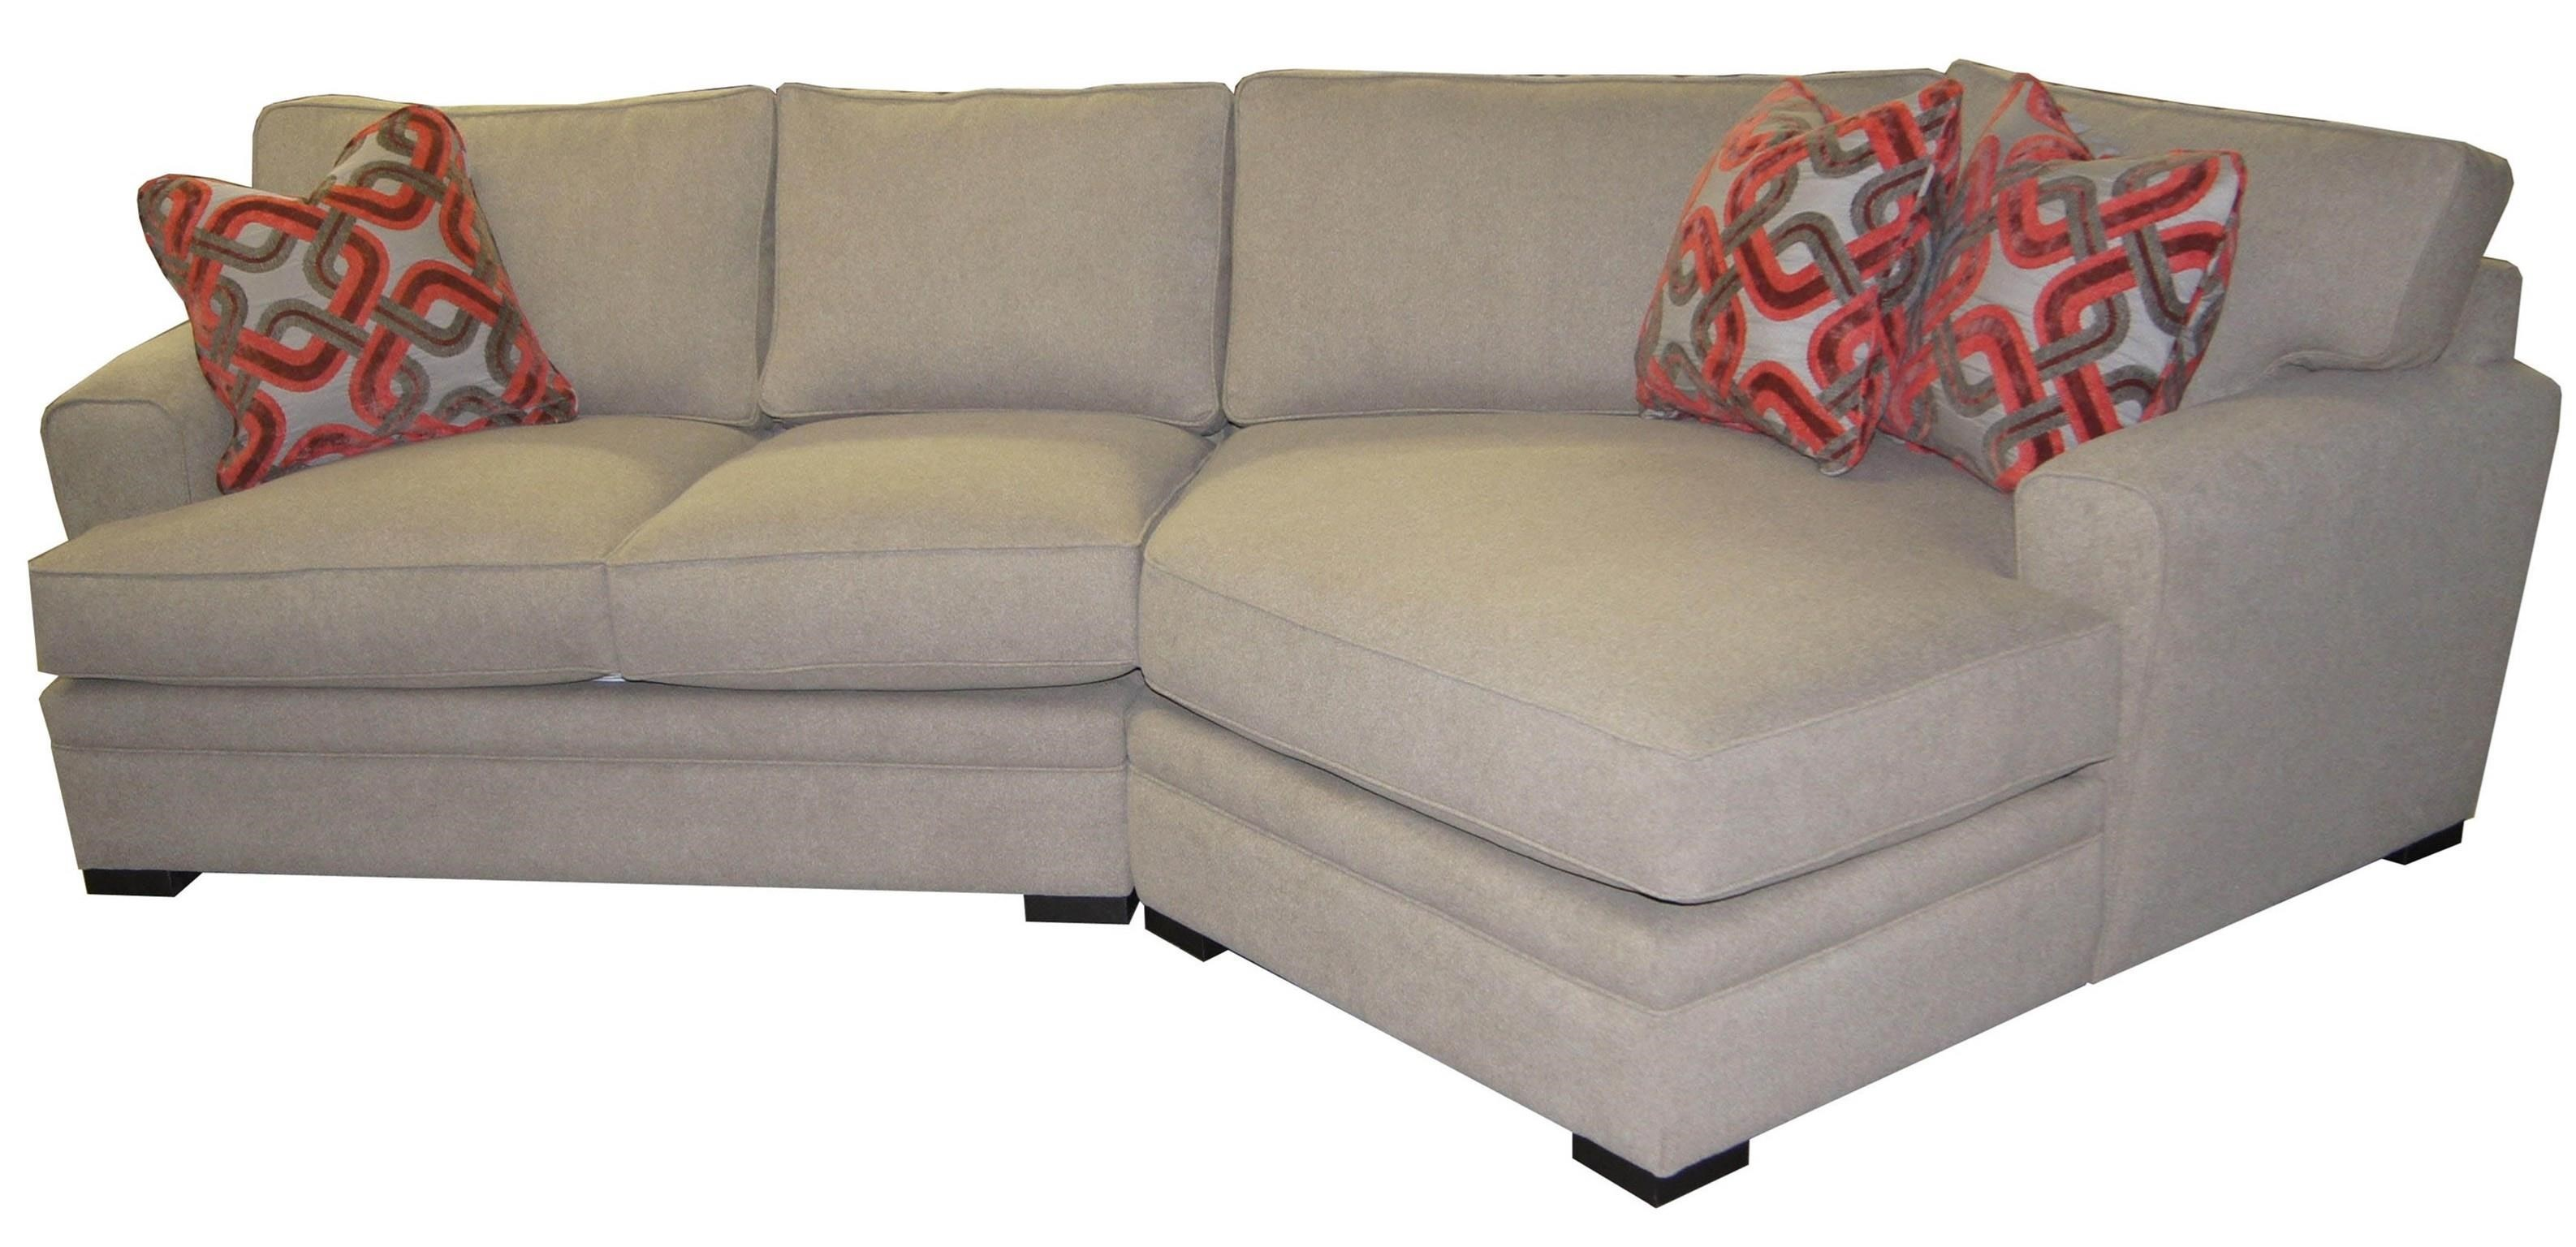 ... Jonathan Louis Aries Casual Sectional Sofa With Rolled Arms John ...